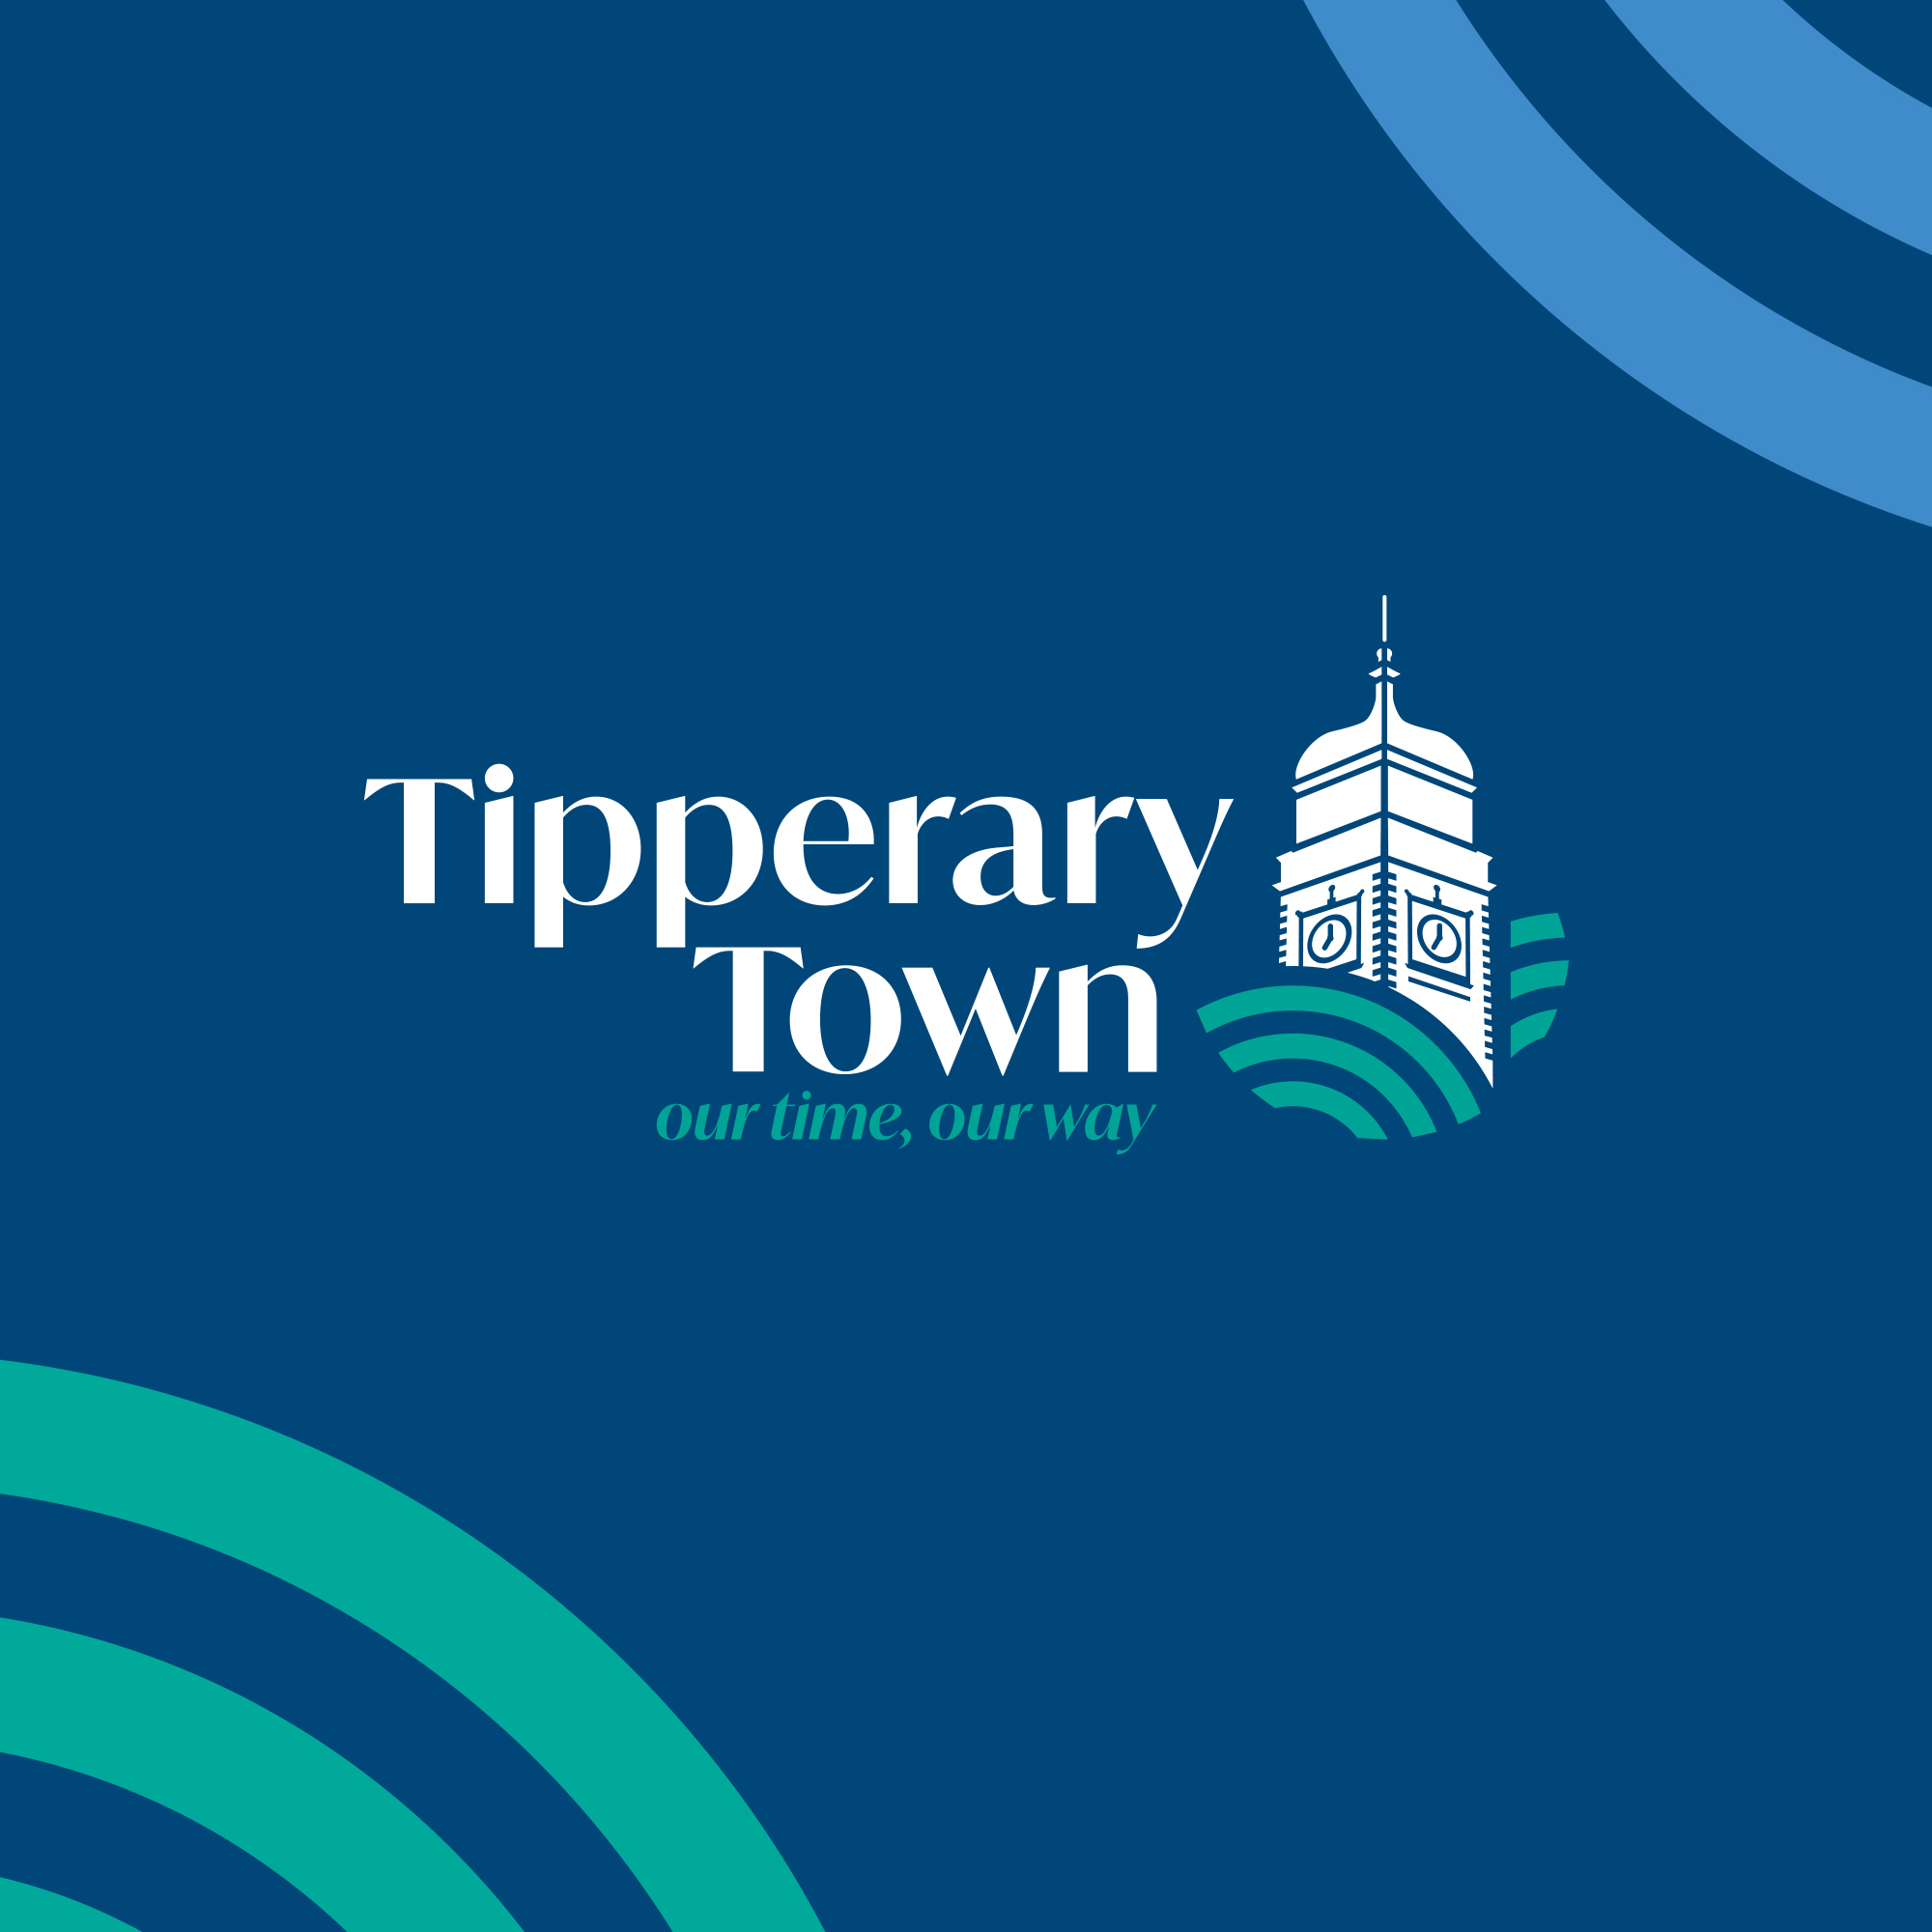 Cover image: Tipperary Town Brand Identity